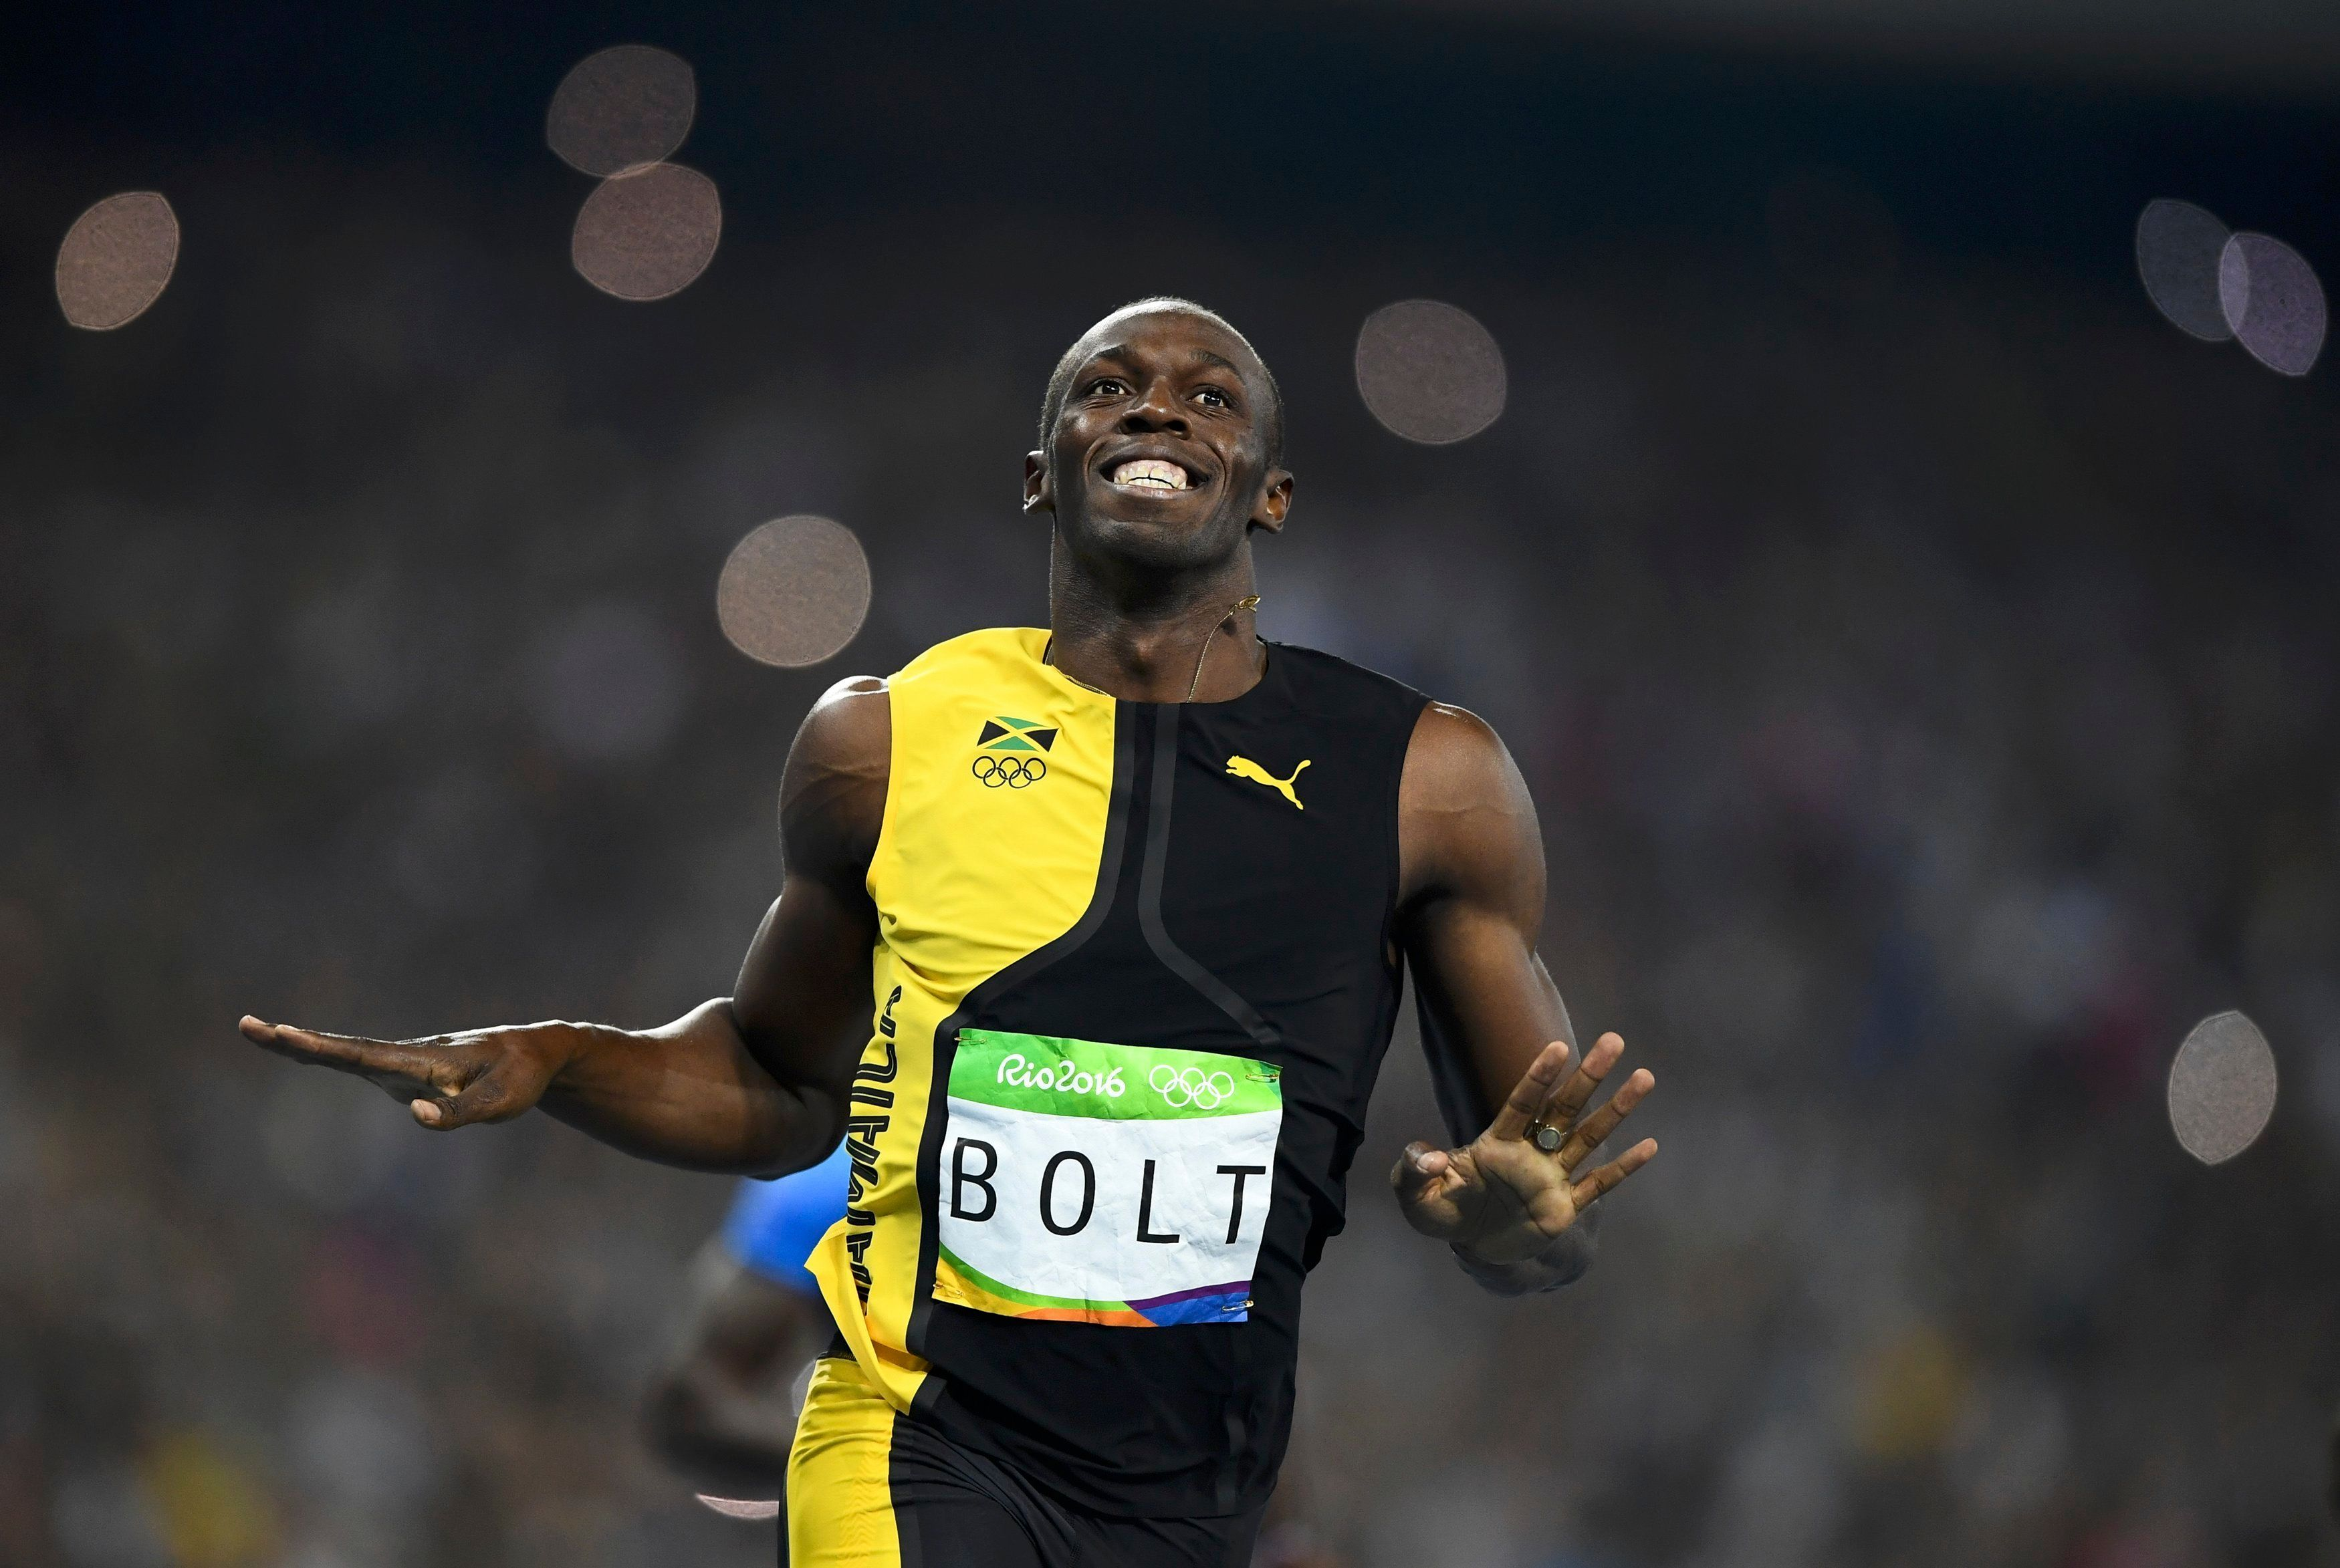 Jamaican Usain Bolt won the men's 100-meter dash for the third consecutive time.